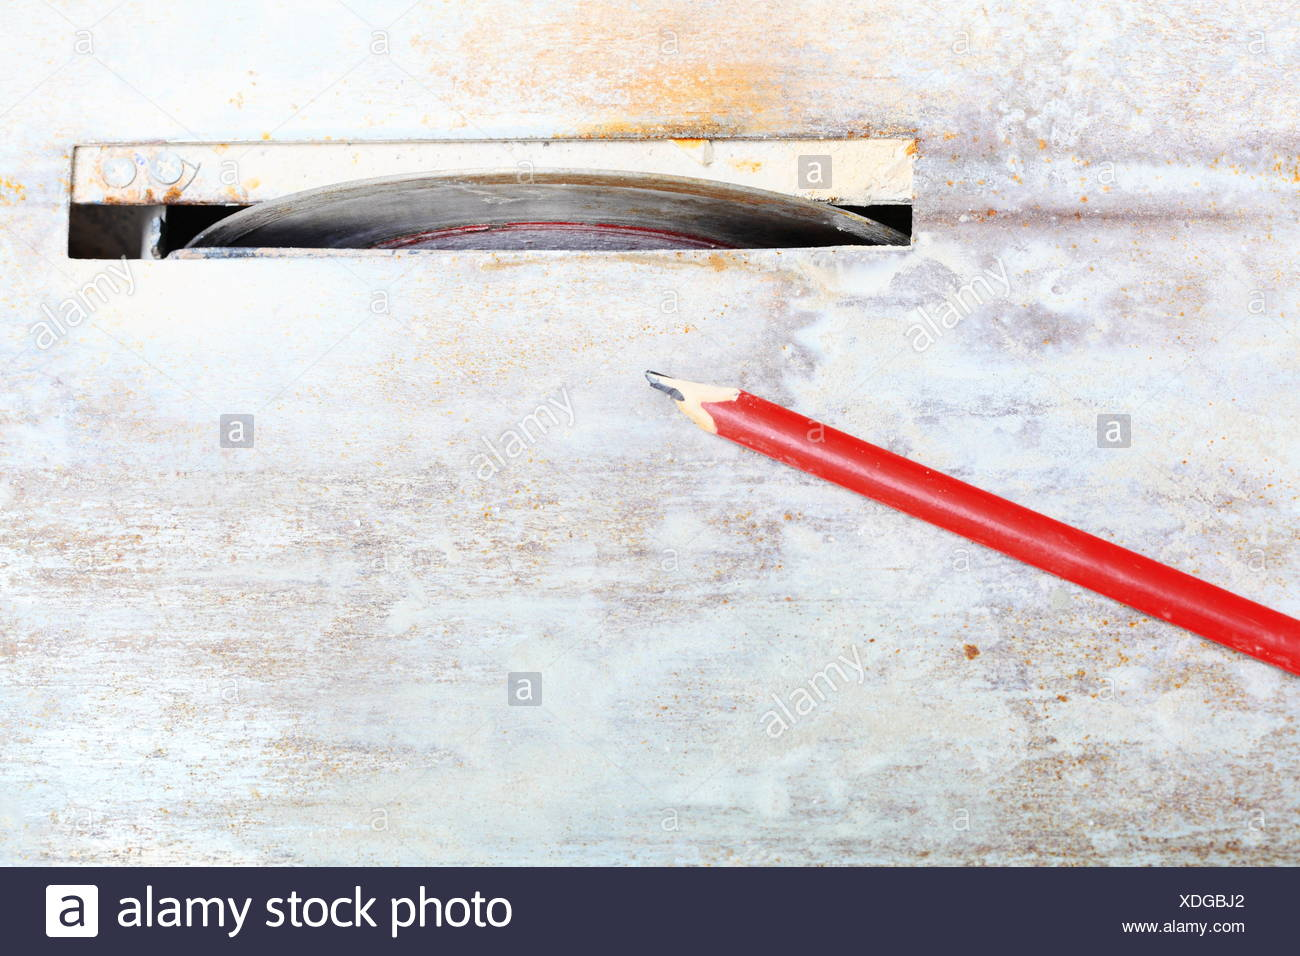 Circular Saw Cutter Blades Used To Cut Floor Tile Stock Photo